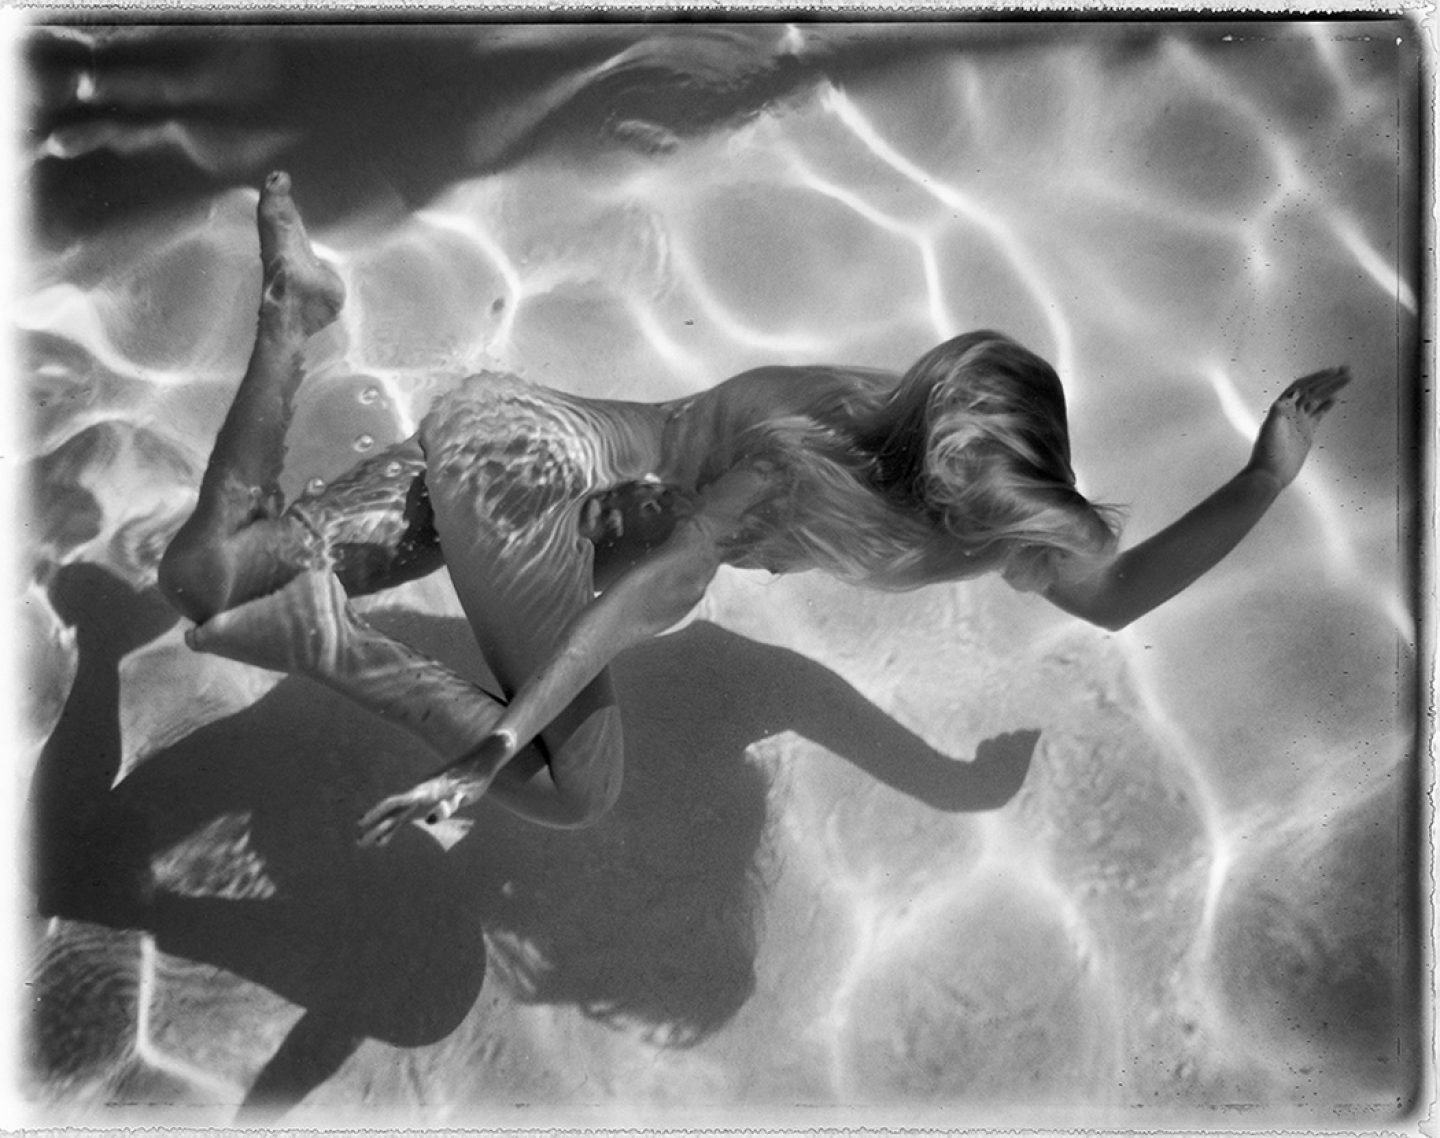 iGNANT_Photography_Deanna_Templeton_The_Swimming_Pool_10